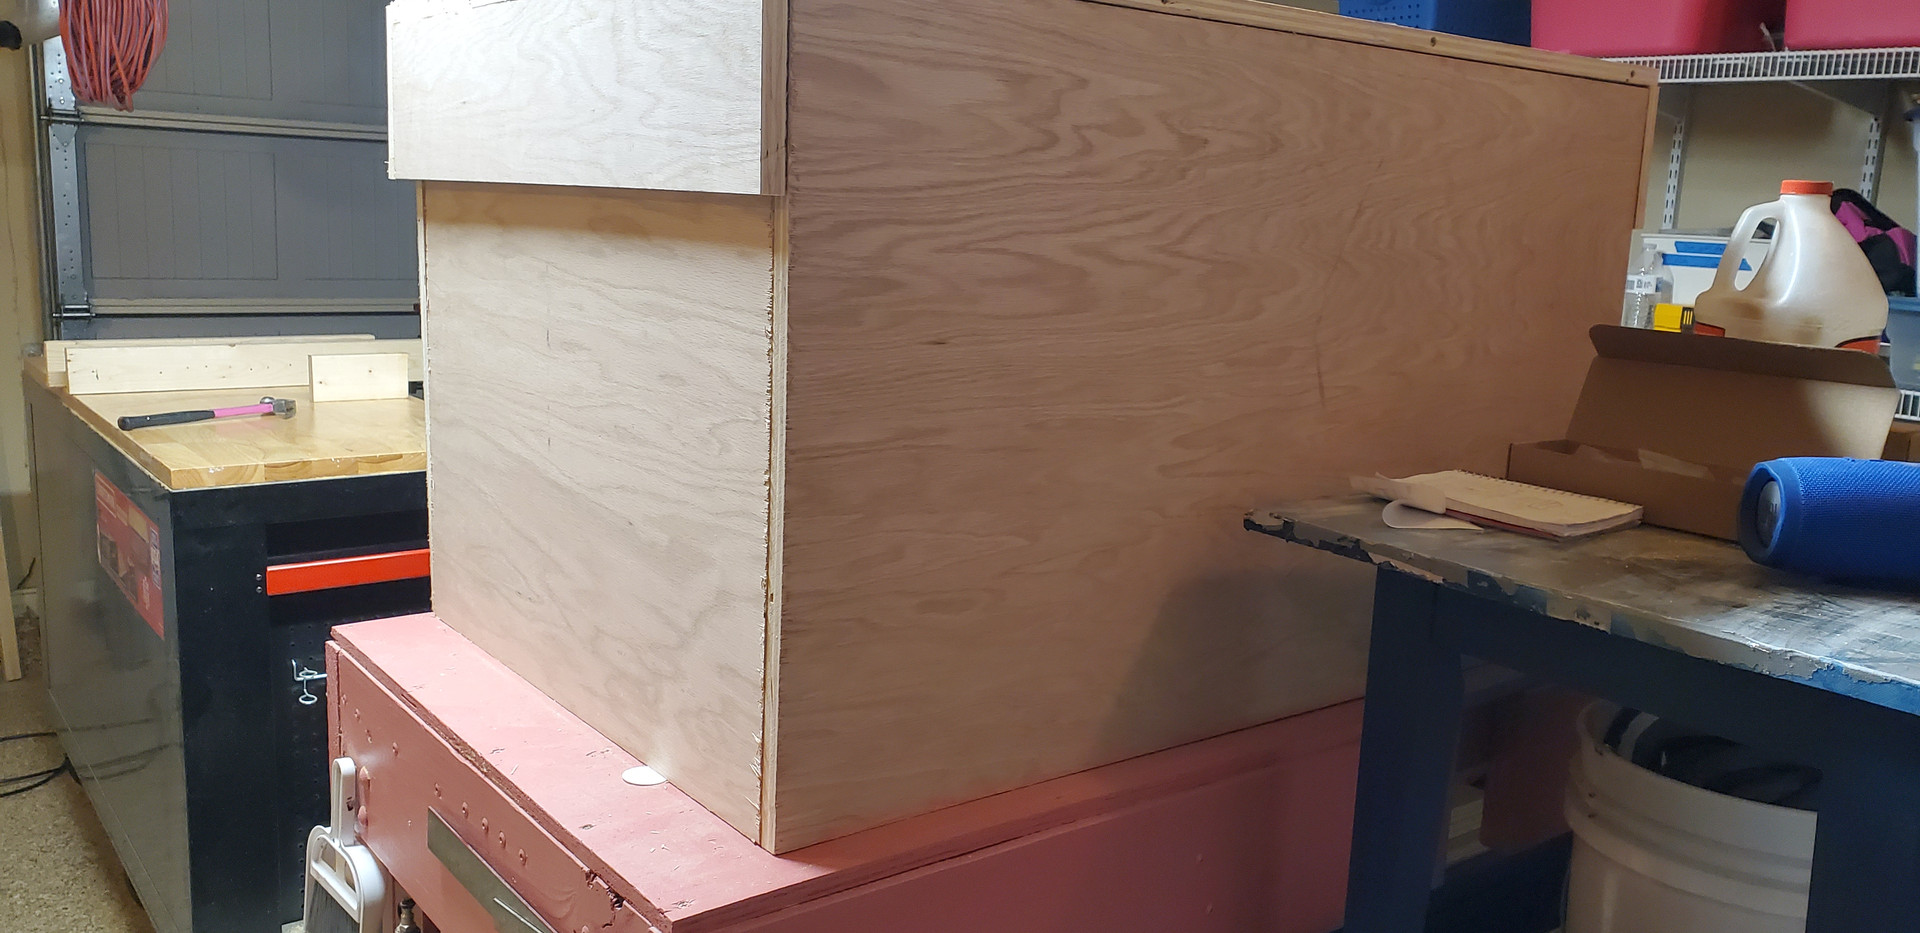 completed box build